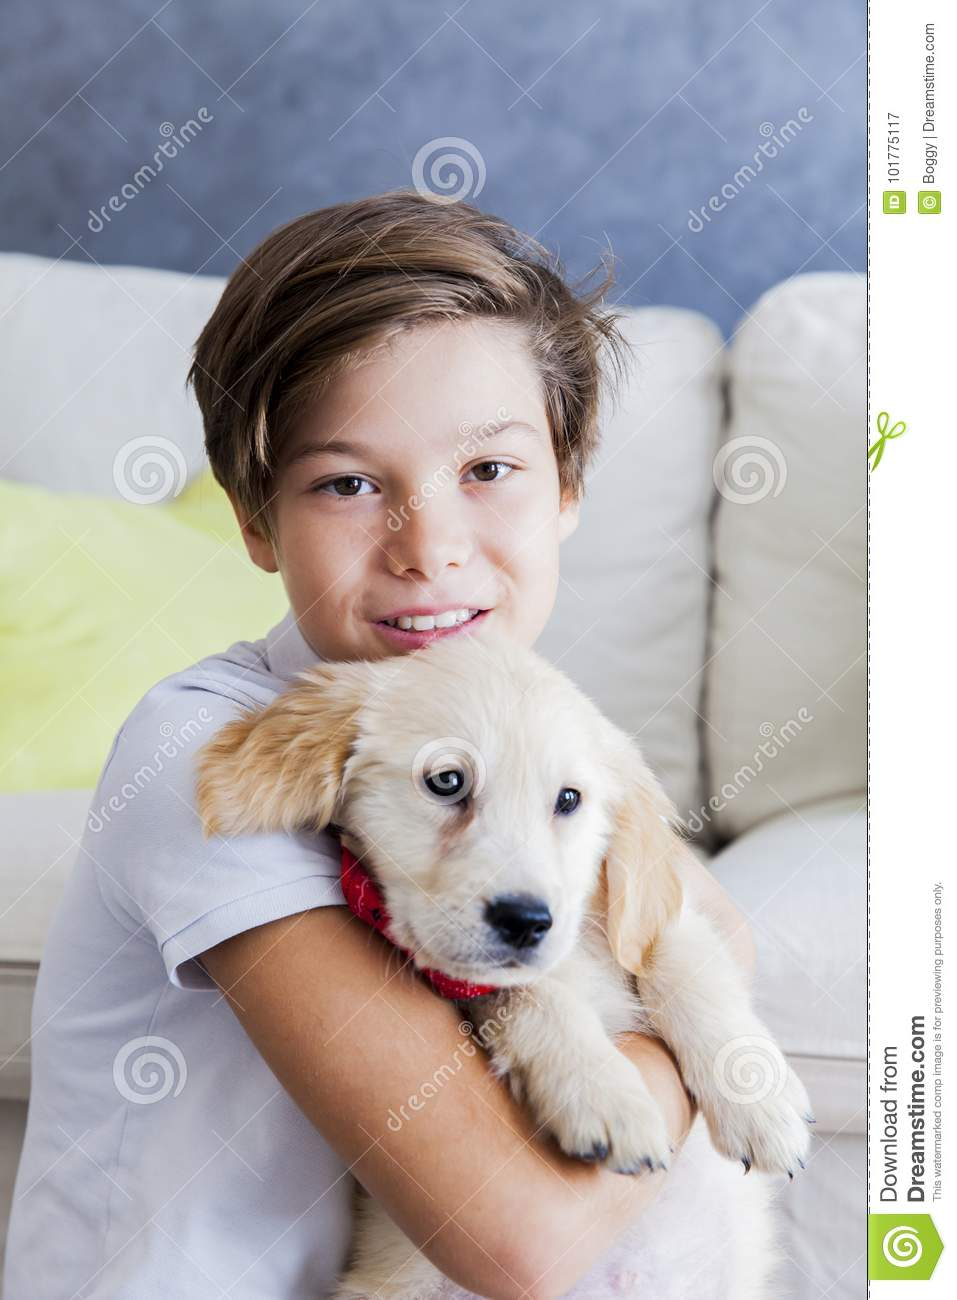 Cute teen boy with baby retriever dog in room